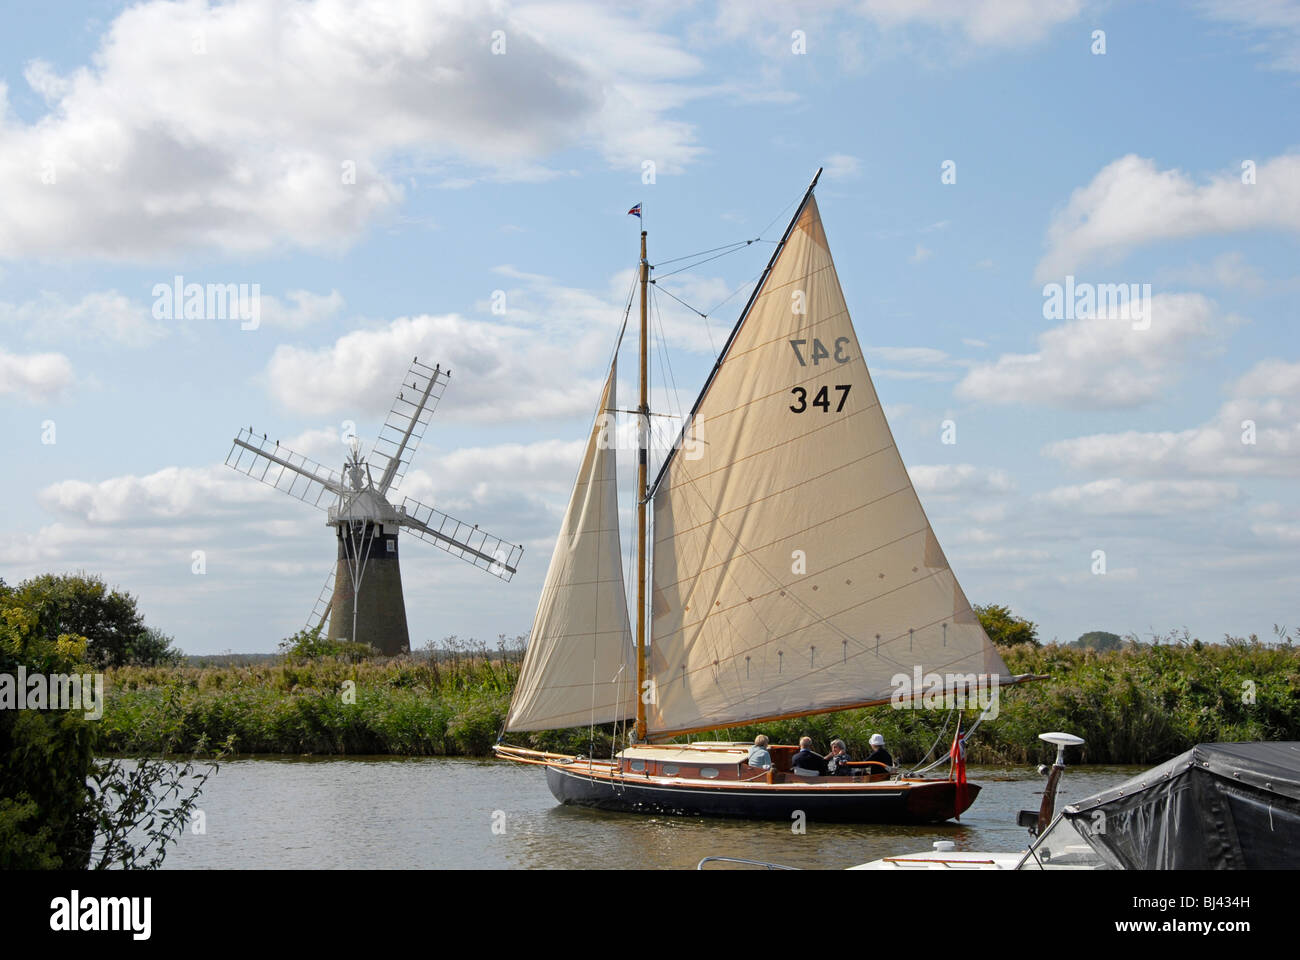 Private yacht on River Bure, Norfolk, England - Stock Image